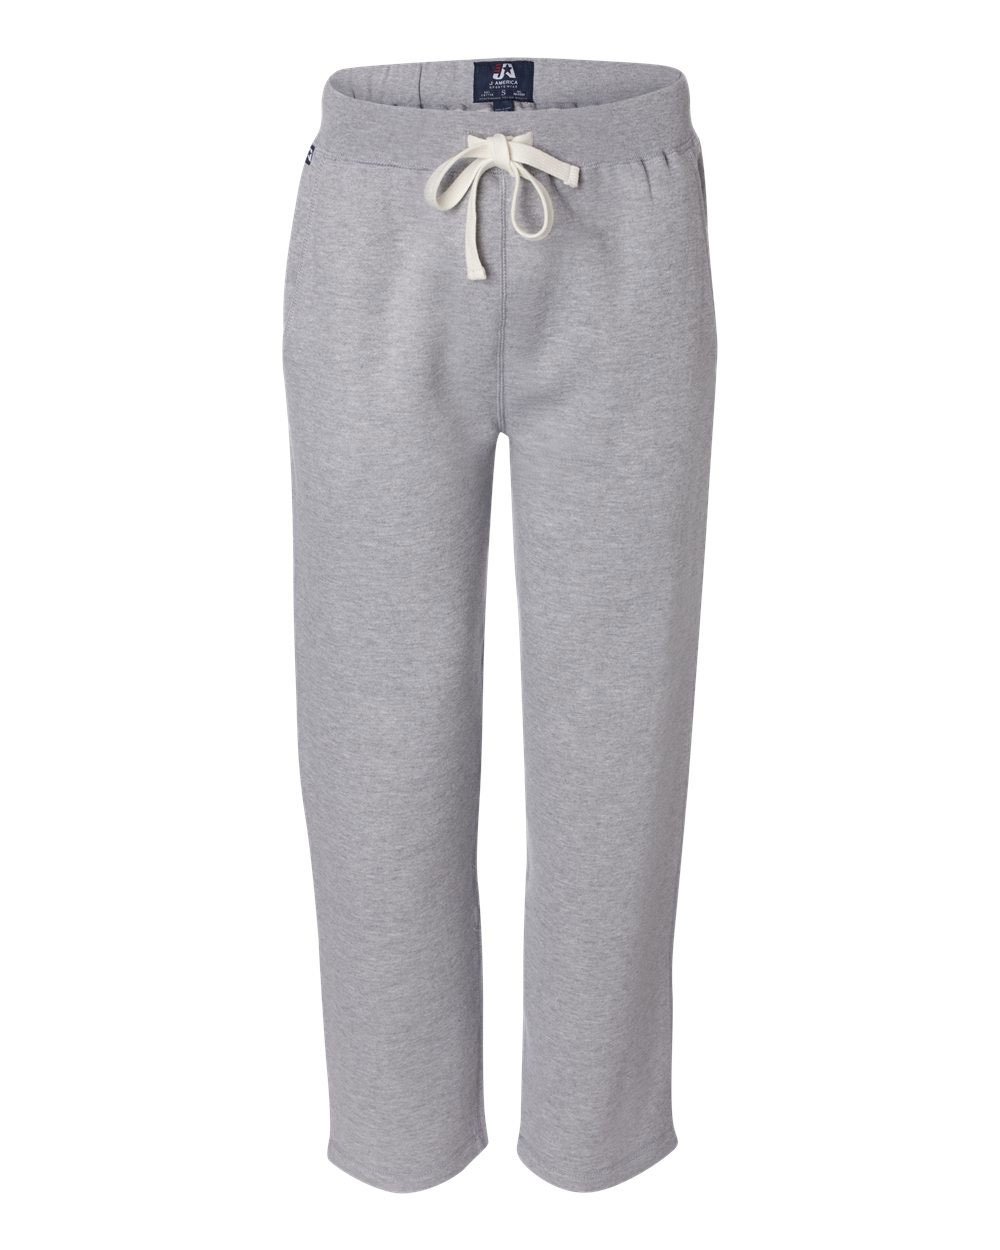 J. America Premium Open Bottom Sweatpants